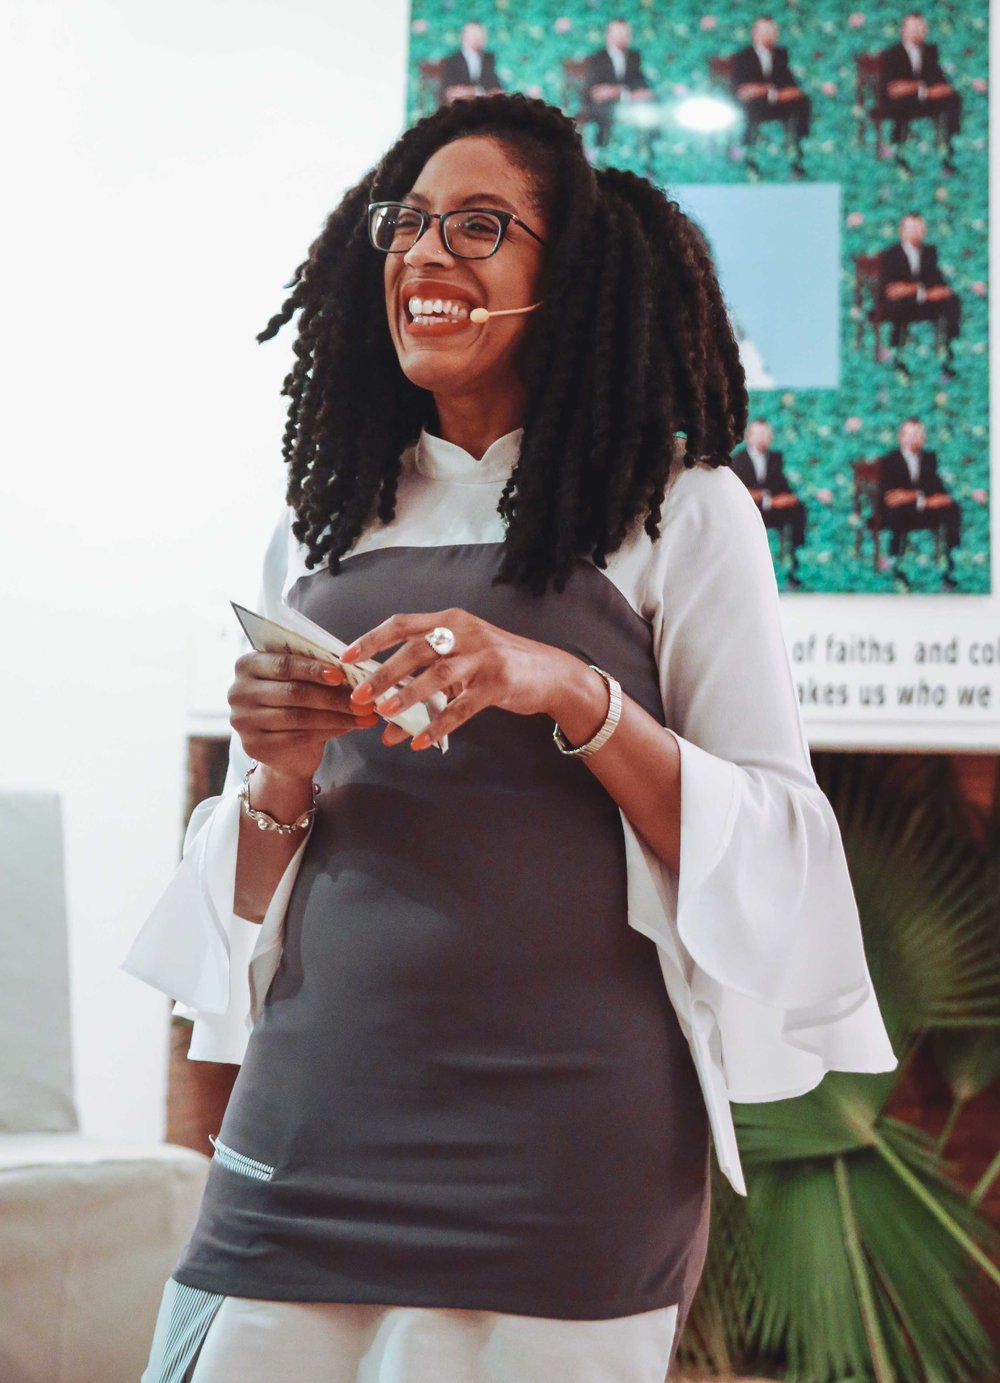 """TED TALK - """"Enuma Okoro explores how people of differing cultures can be at home within a diverse society. She queries the perception of iconic women around the world and proffers that 'stereotypes come from a modicum of truth but never give us the full answer."""""""